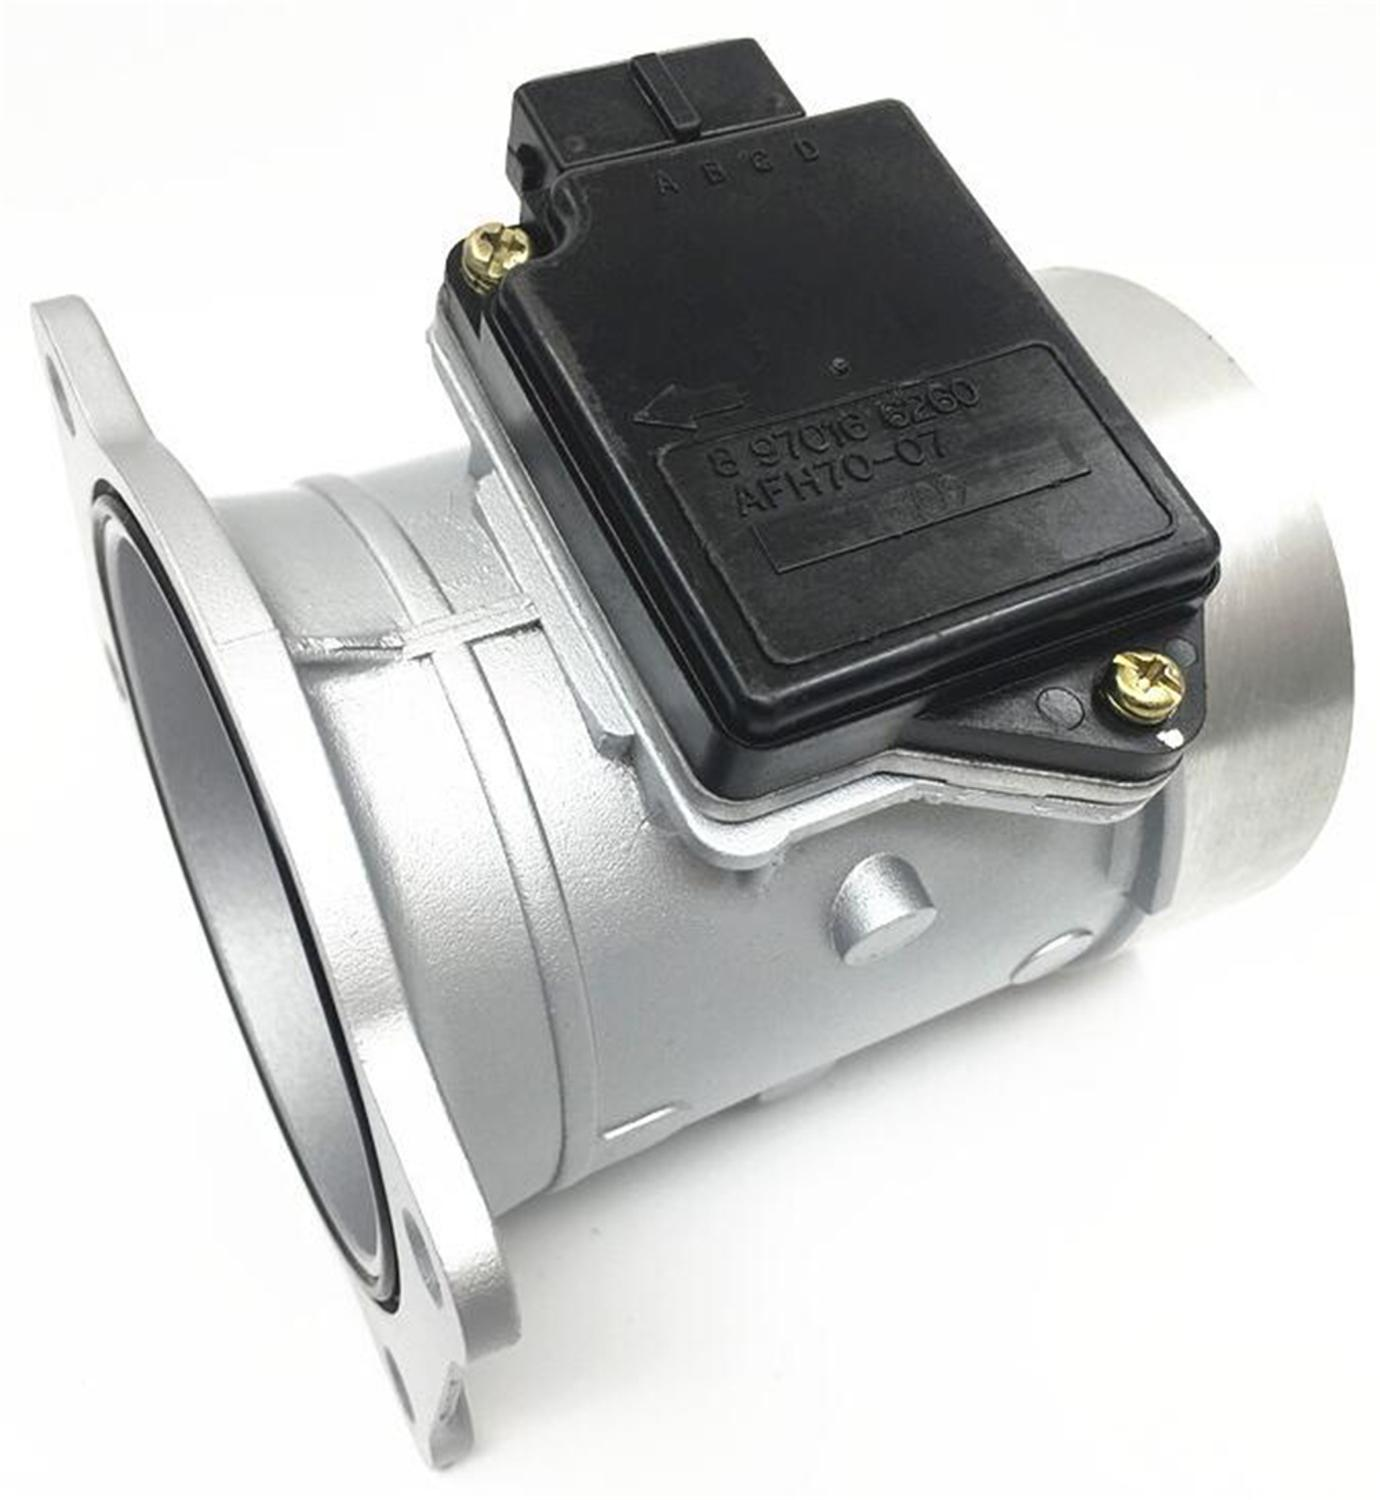 1pc Auto Mass Air Flow Sensors High Quality Air Flow Meter AFH70-07 6970166260 Κατάλληλο για Isuzu Japan Original Parts